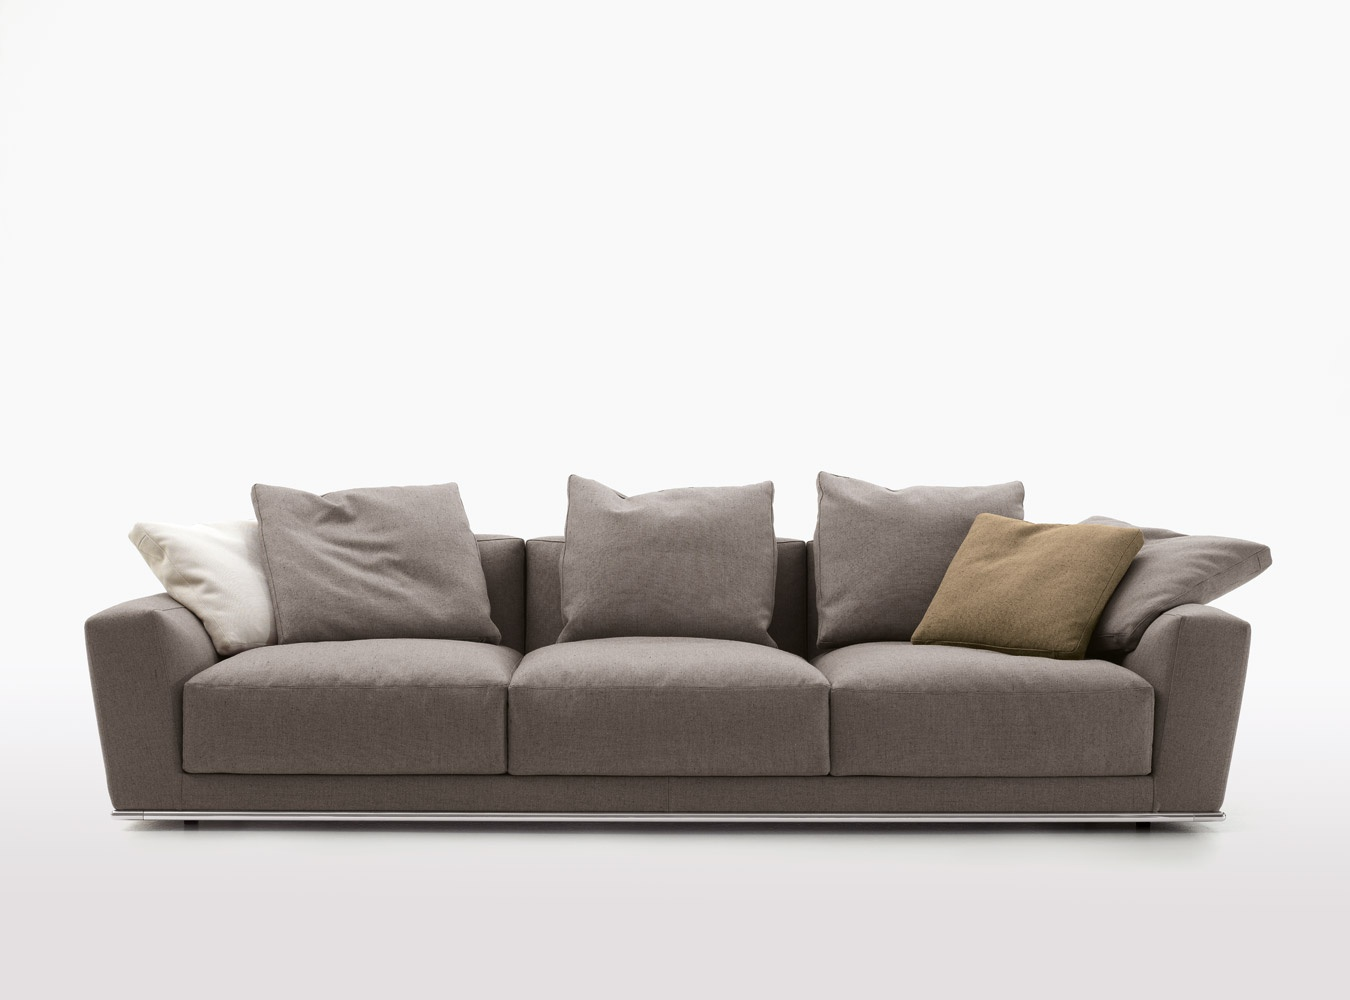 Double Sofa Luis B Amp B Italia Luxury Furniture Mr